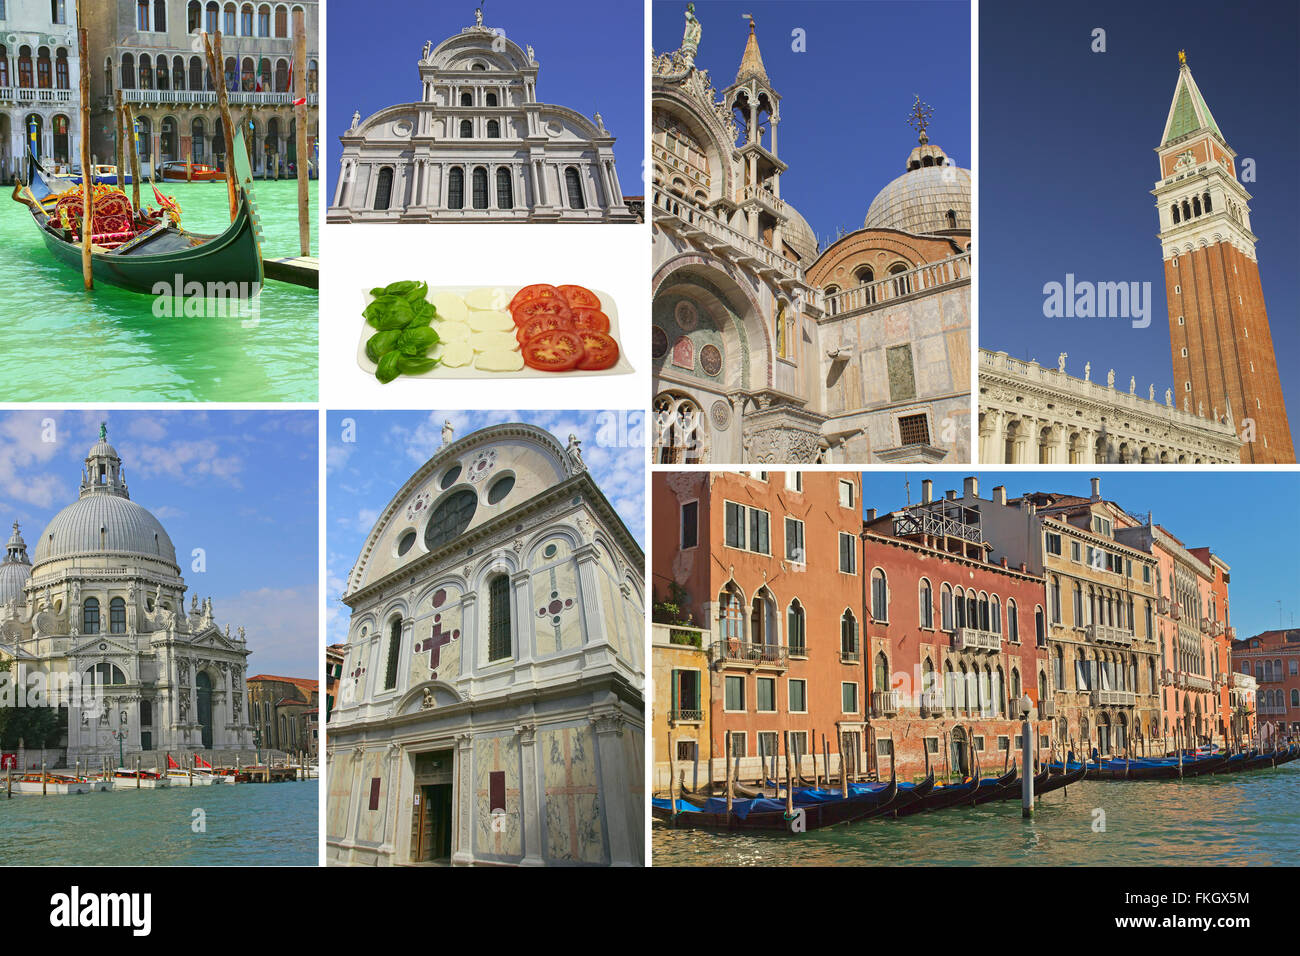 Venice Famous Landmarks Picture Collage Italy